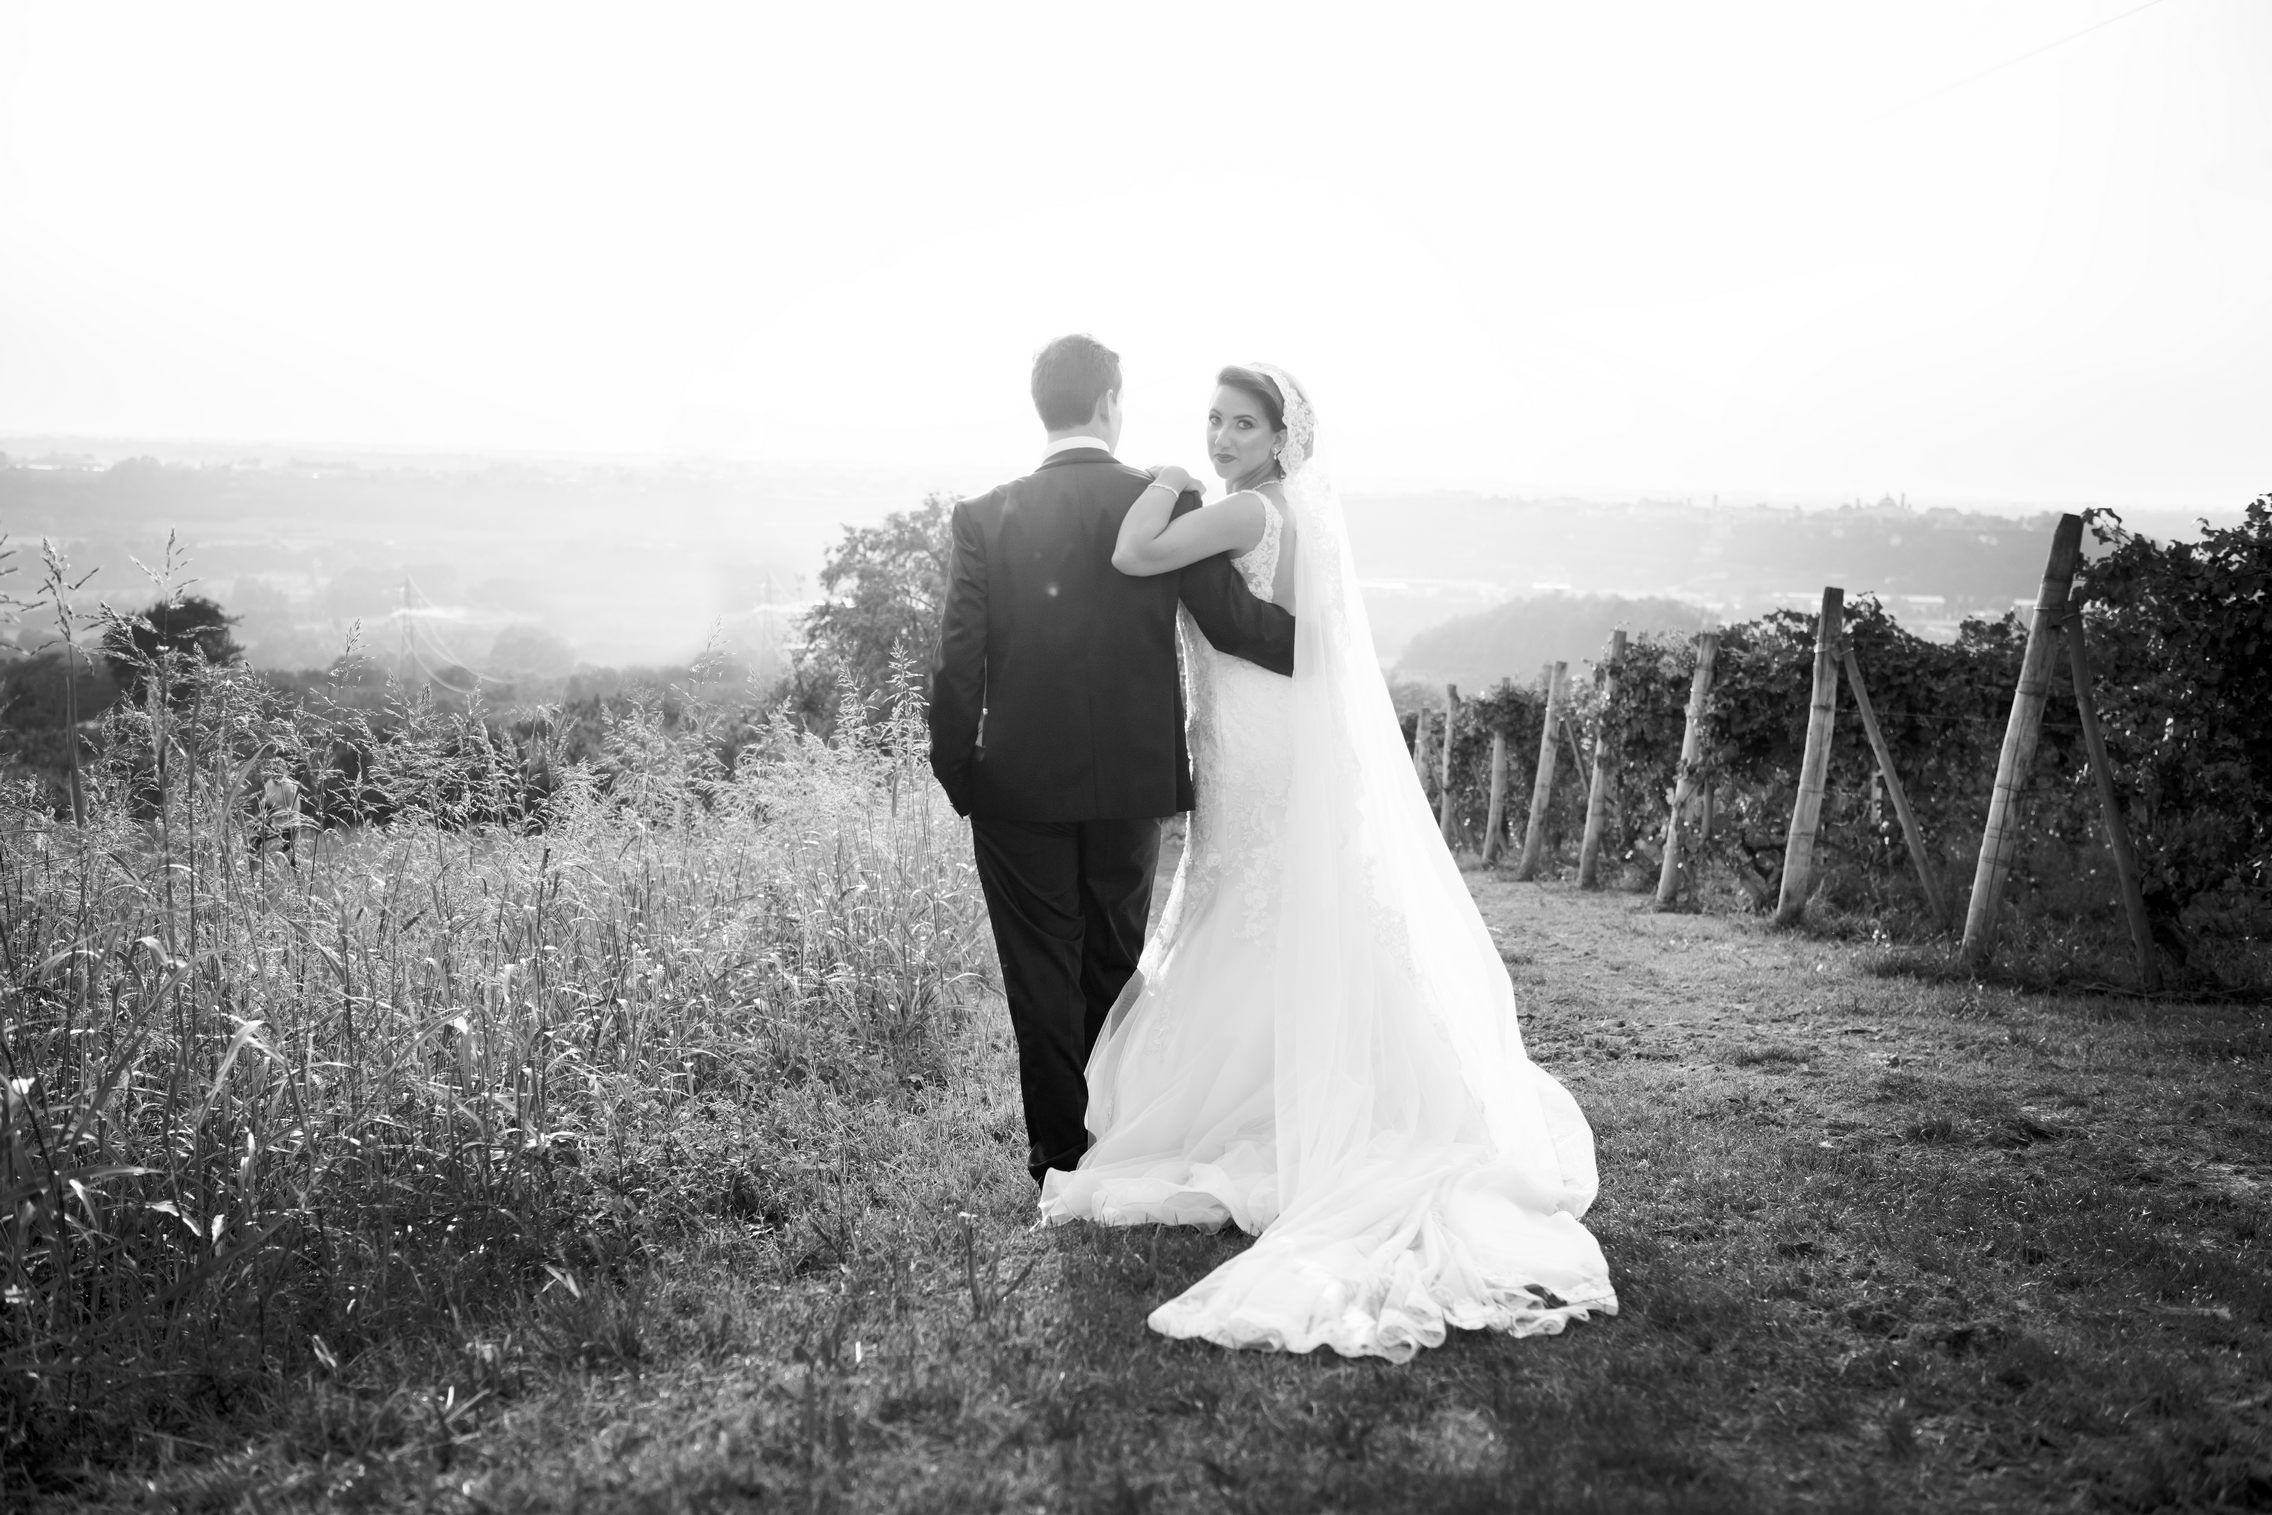 bride and groom in the vineyard - sposi tra i vigneti